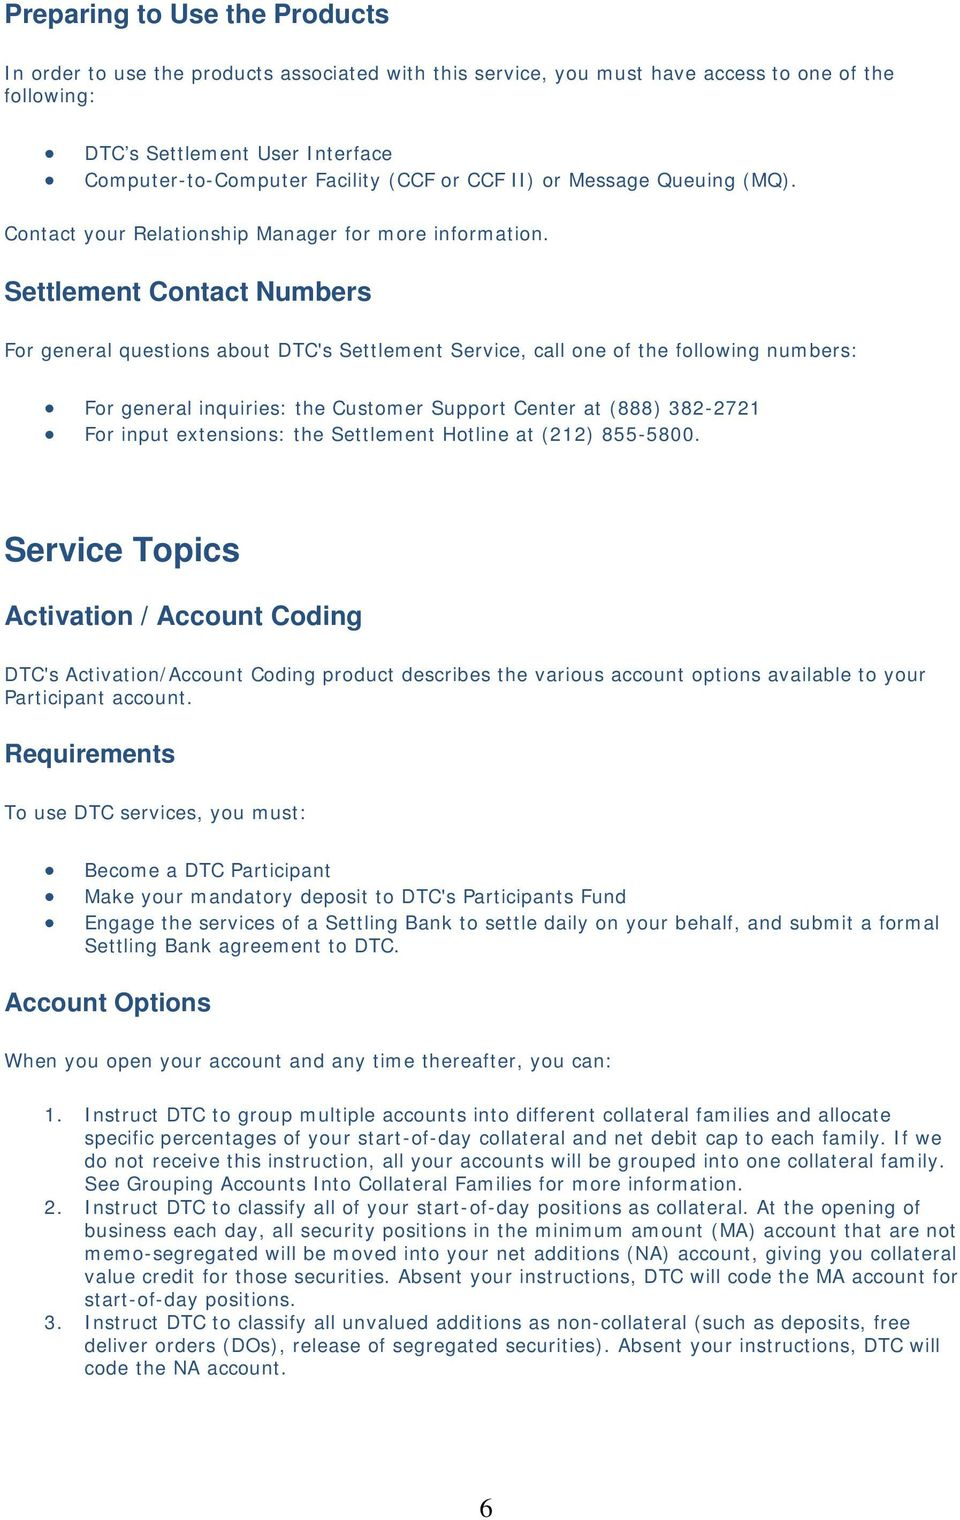 Settlement Contact Numbers For general questions about DTC's Settlement Service, call one of the following numbers: For general inquiries: the Customer Support Center at (888) 382-2721 For input